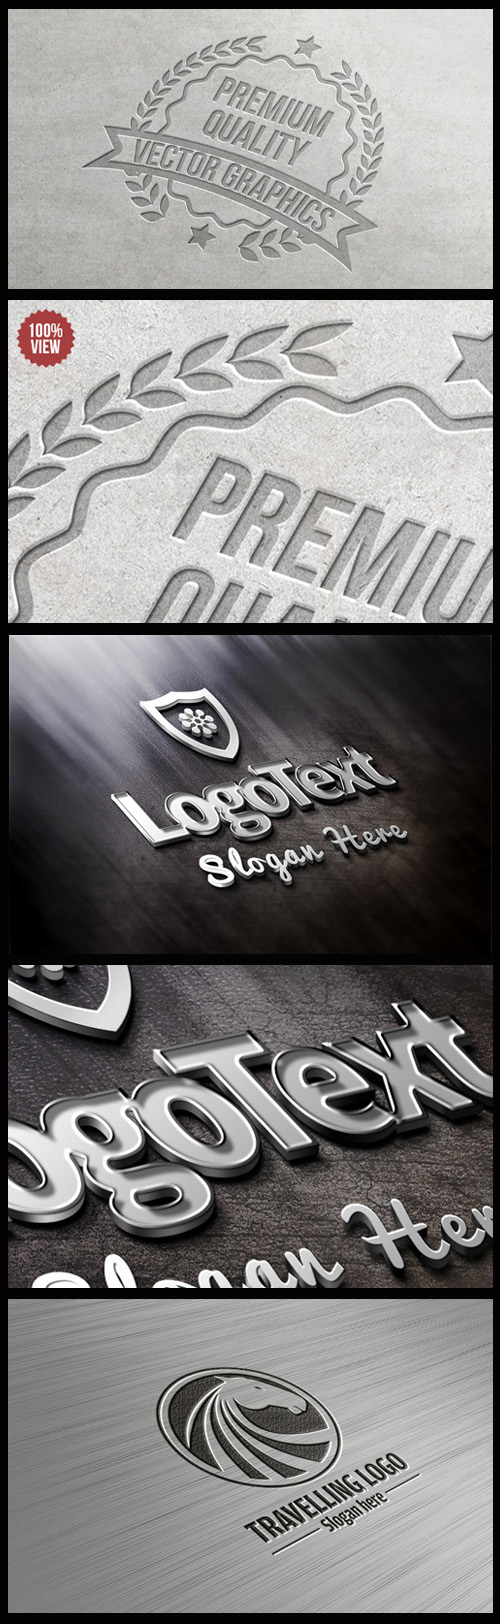 Logo Mock-Ups - Letter Press, Metallic, Steel Logo